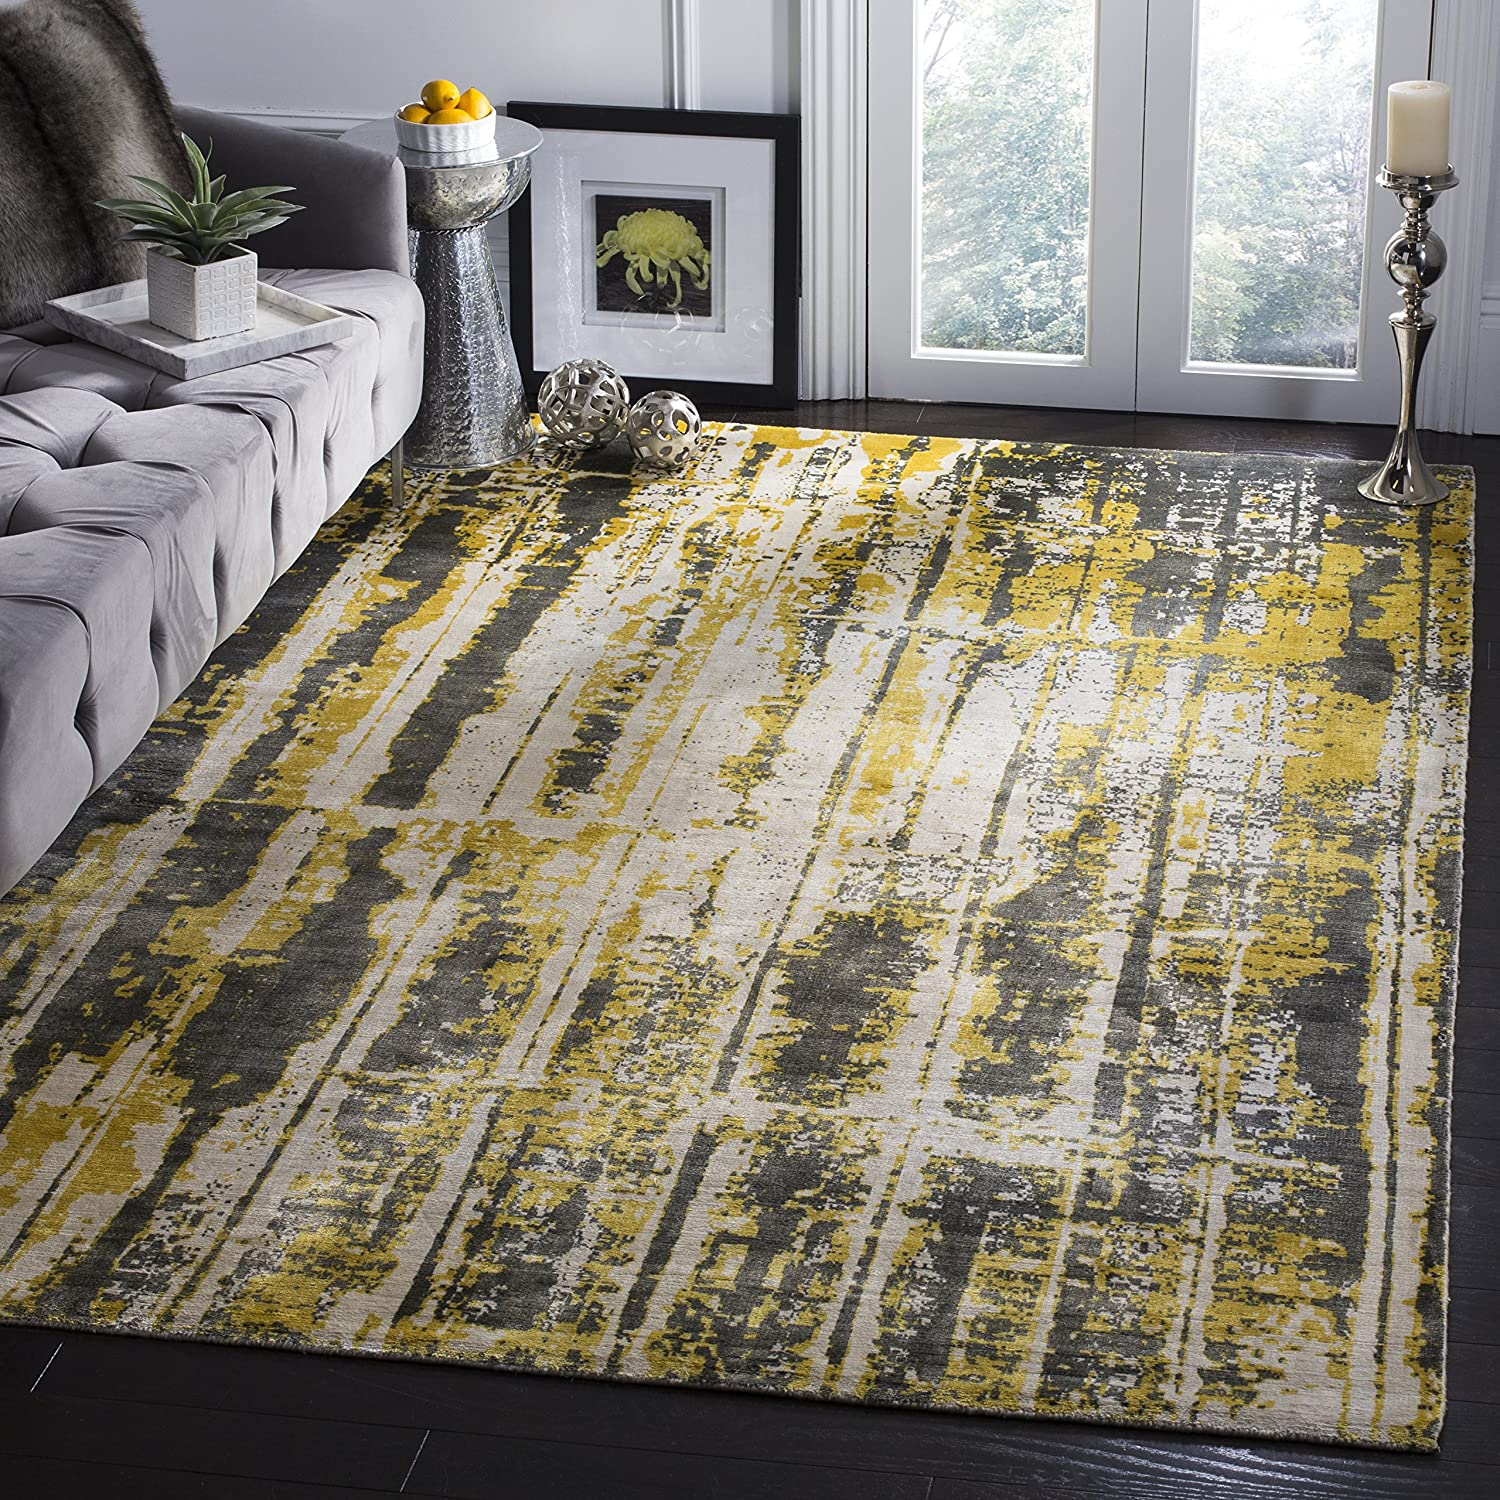 Amazon Com Safavieh Mirage Collection Mir267a Handmade Modern Abstract Viscose Area Rug 9 X 12 Grey Yellow Furniture Decor